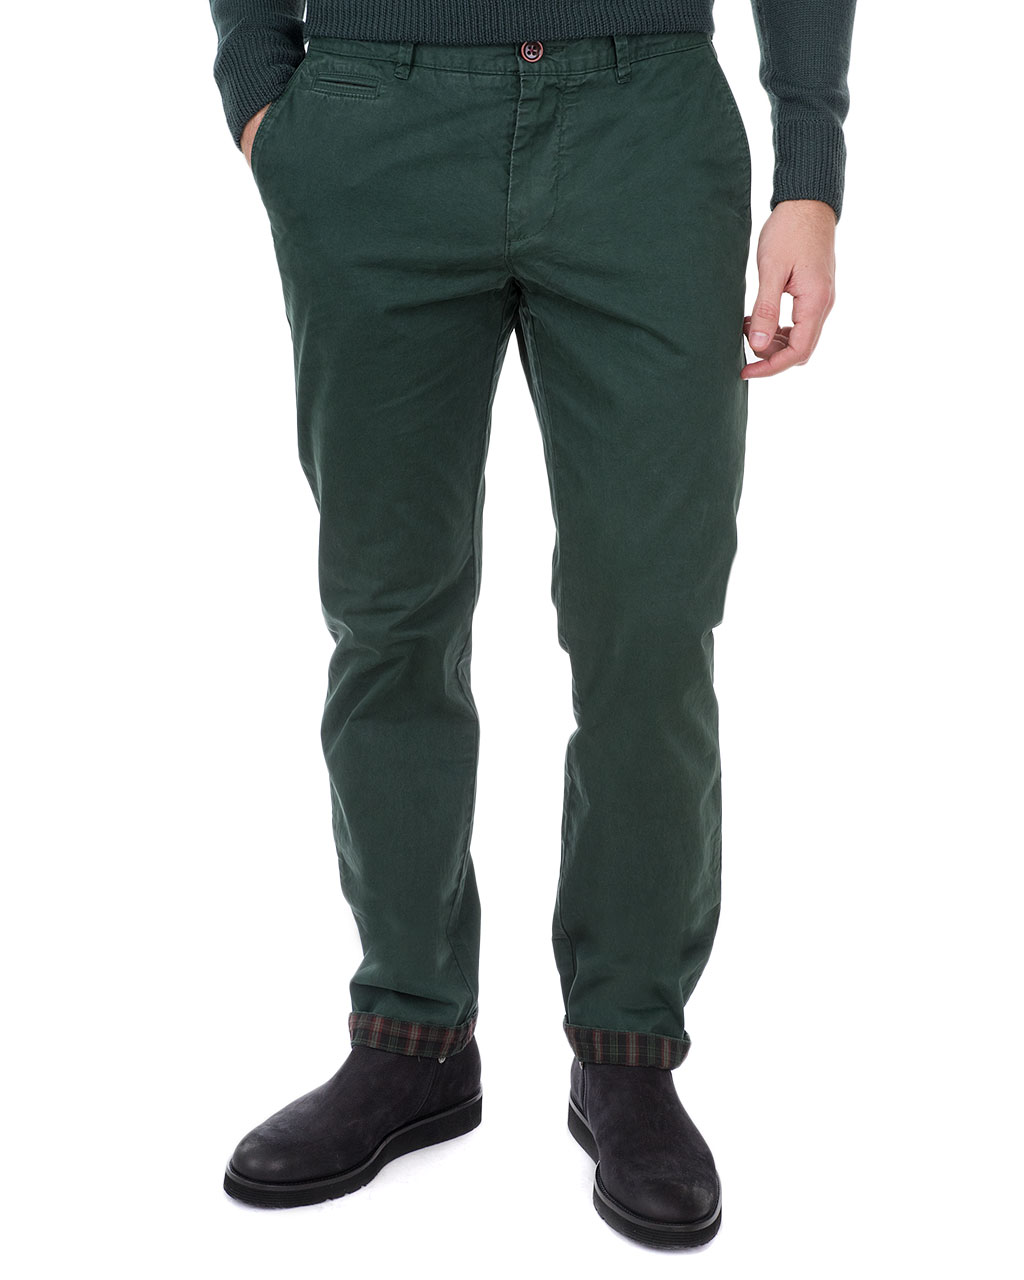 Men's trousers 140501520-Shane-bretish  (1)